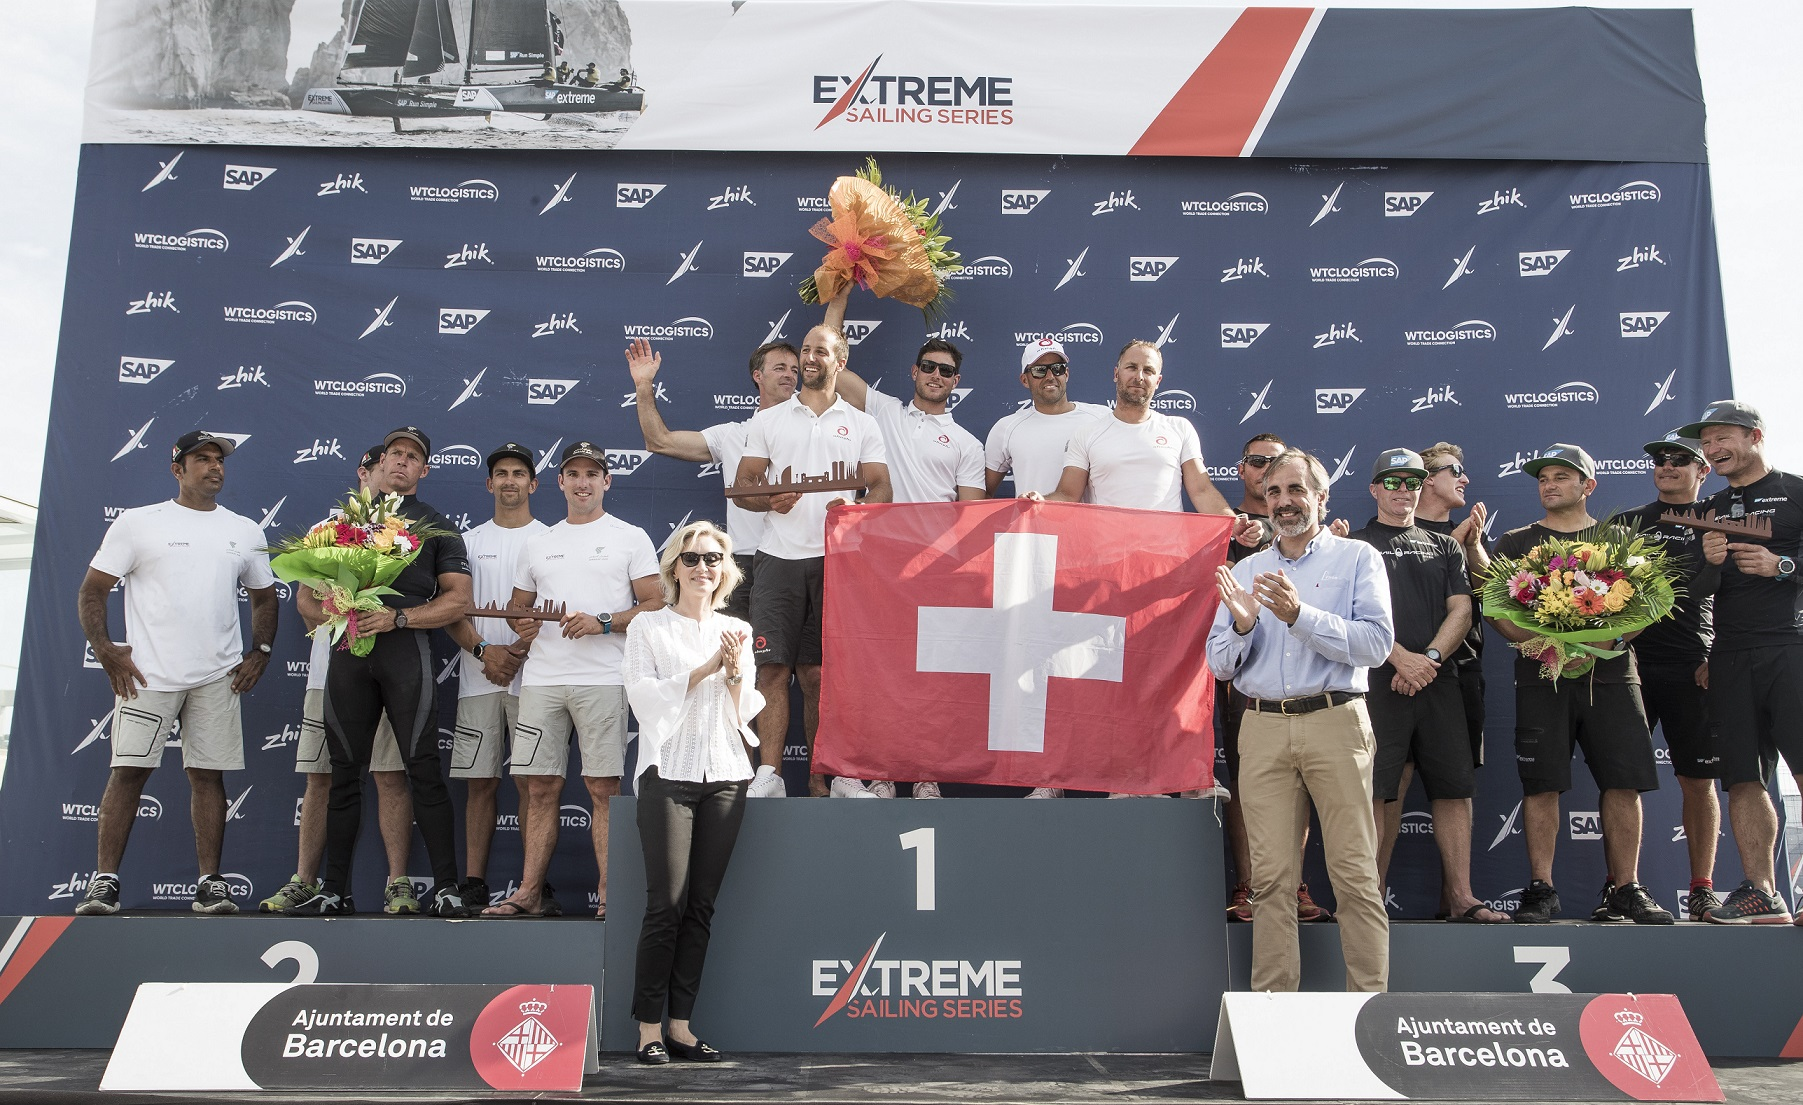 Team Oman Air shows true teamwork to take second place at Extreme Sailing Series event in Barcelona